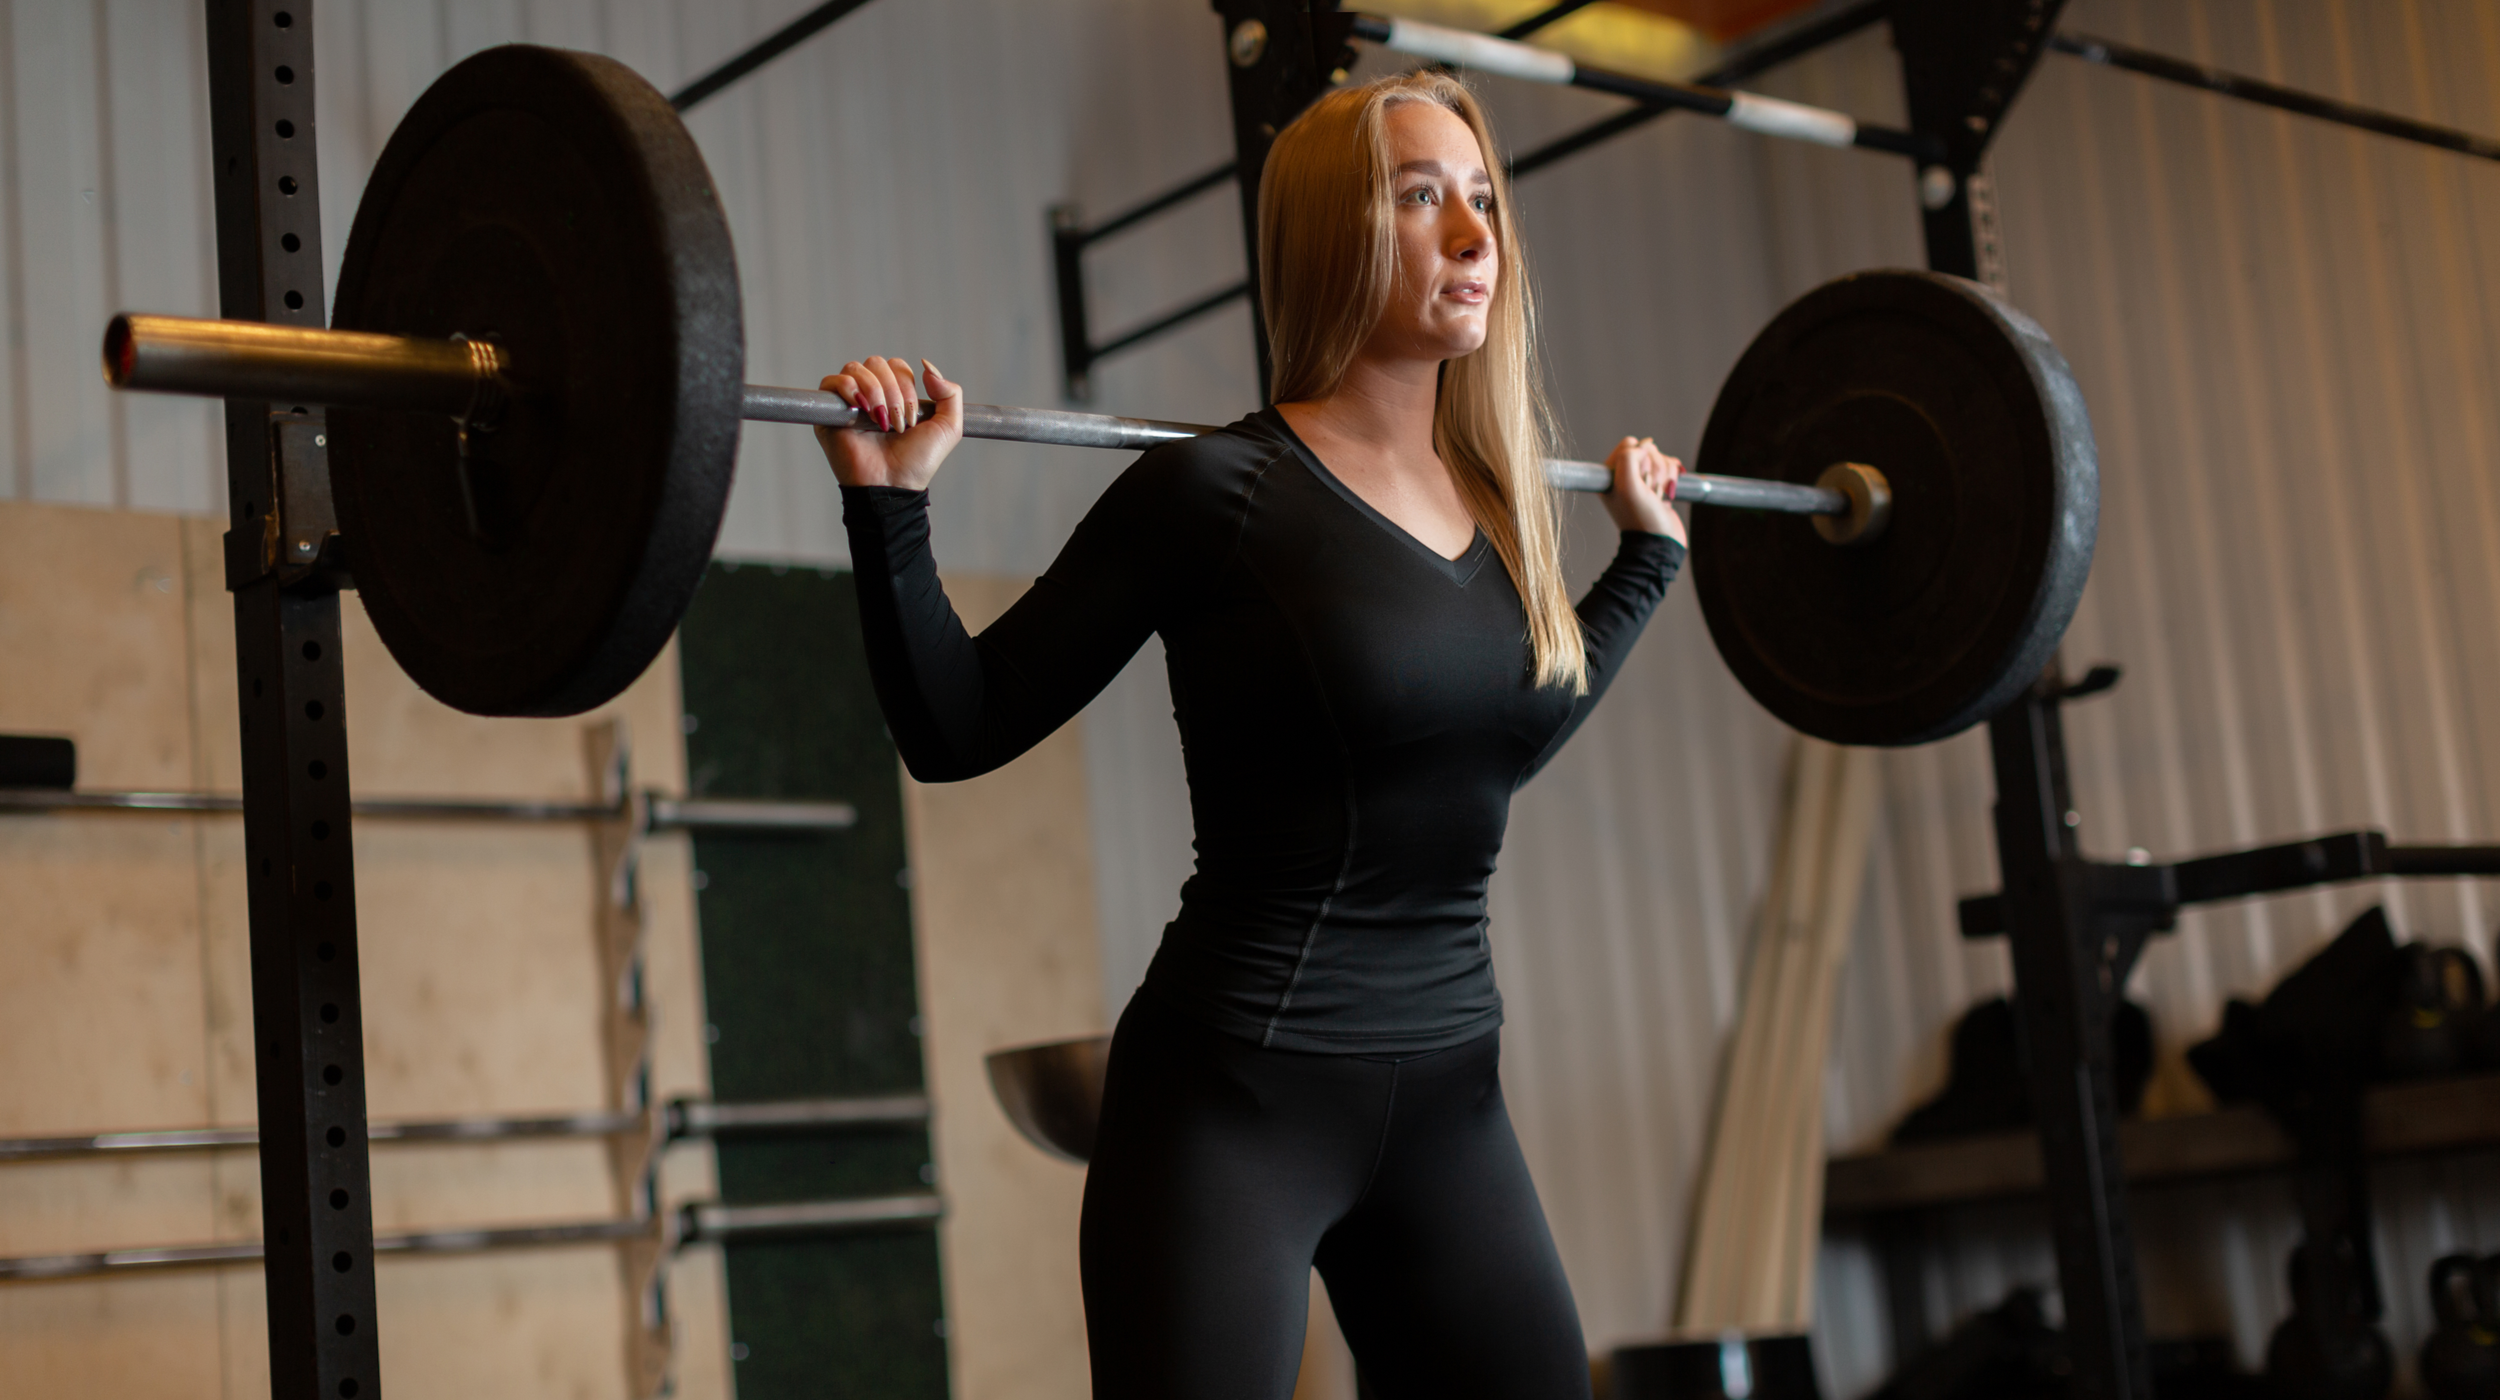 What are the Benefits of Resistance Training?